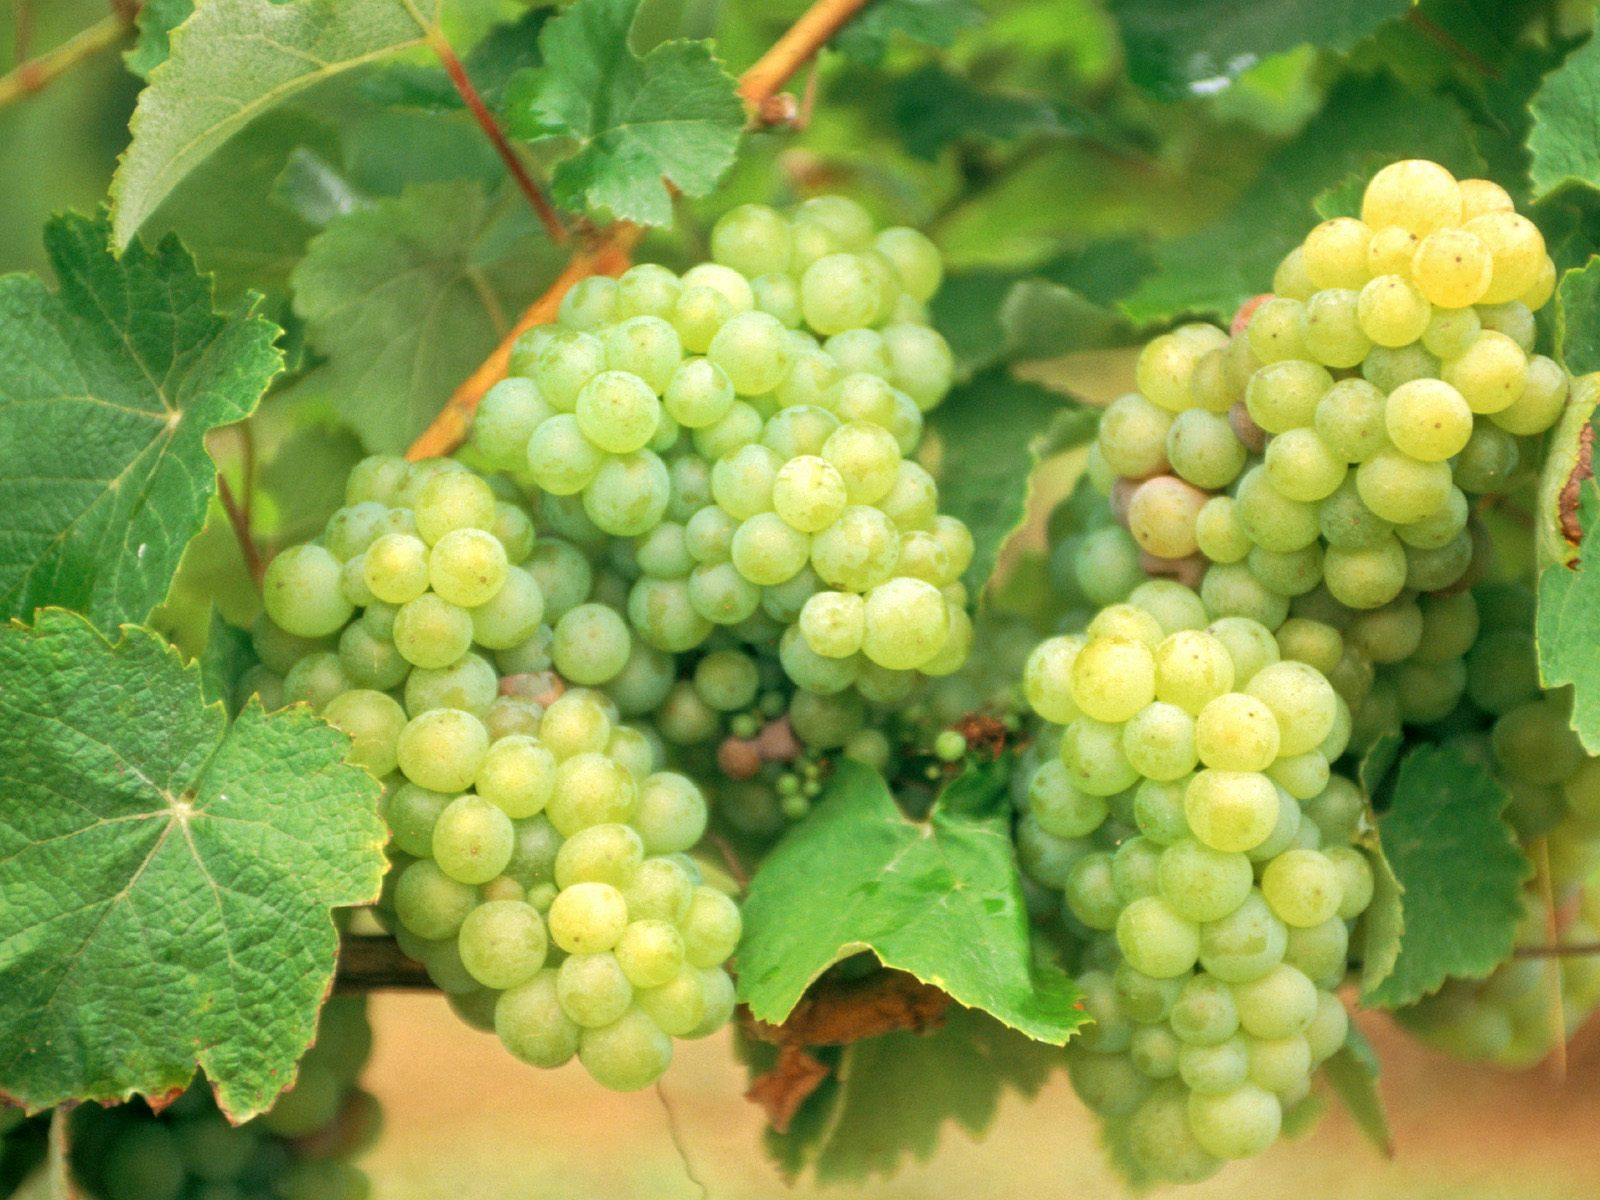 Wallpapers Box: Grapes Harvest Fall HD Wallpapers